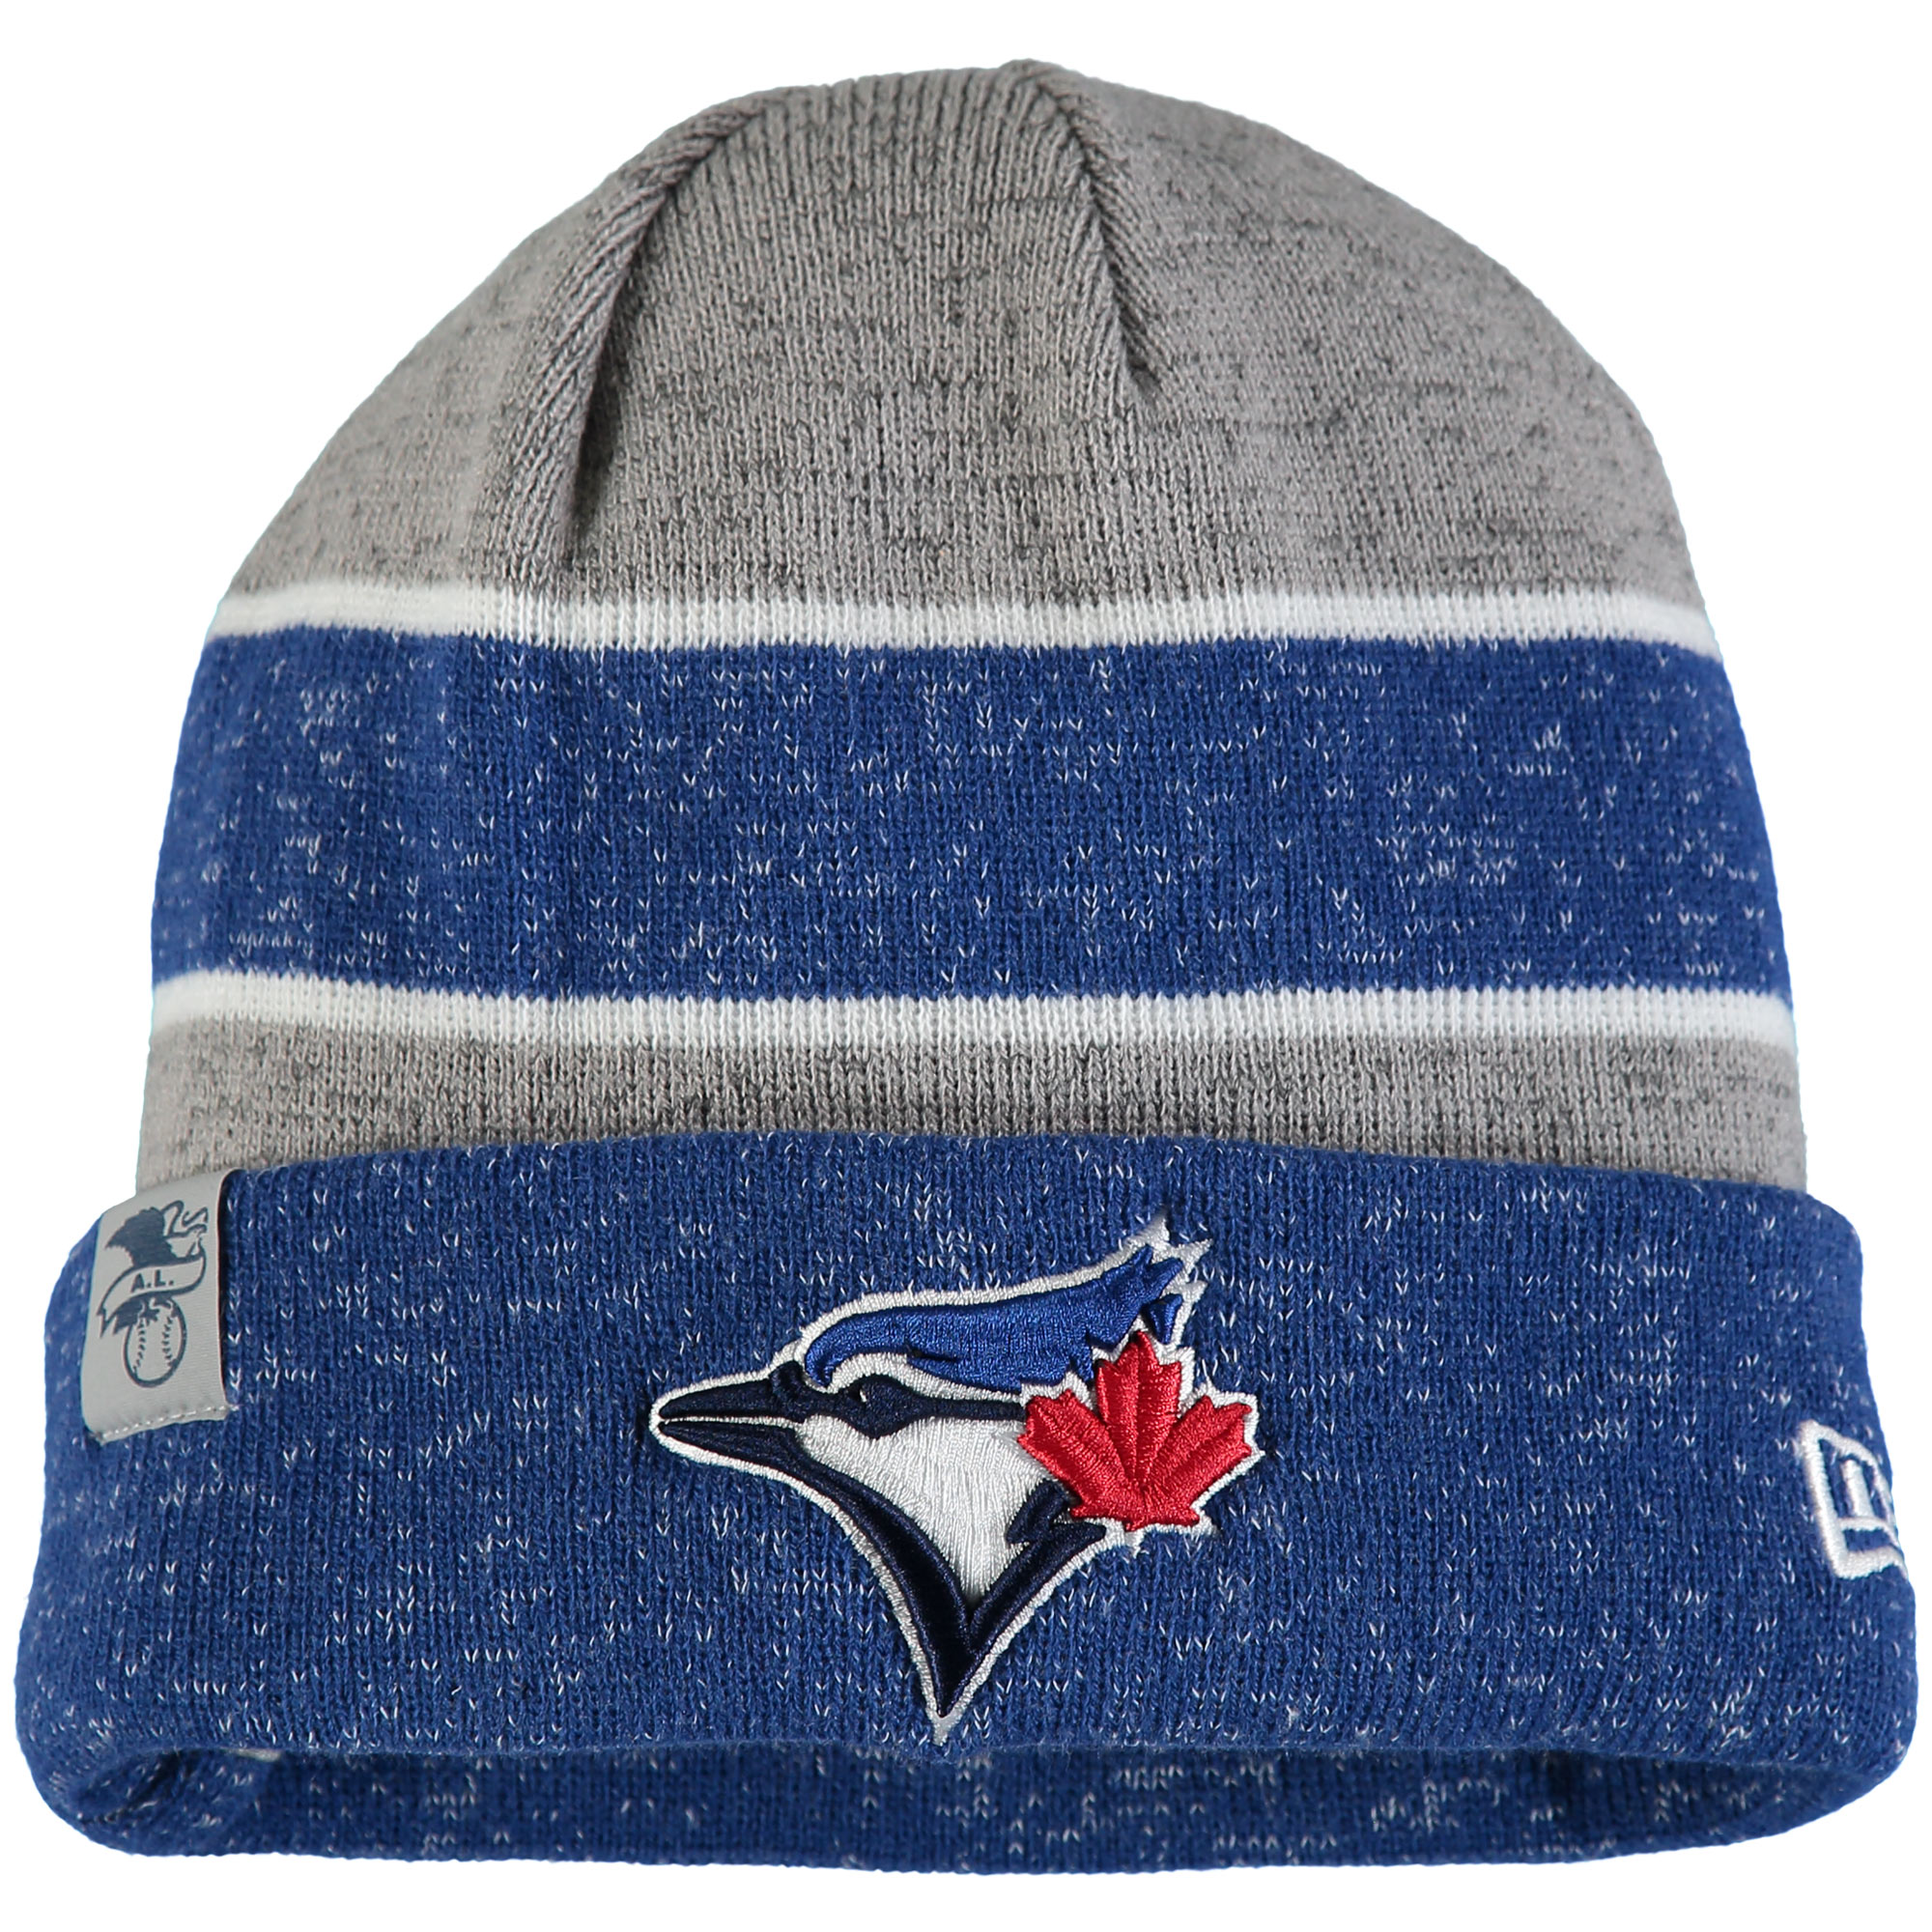 Toronto Blue Jays New Era On Field Sport Cuffed Knit Hat - Heathered Gray/Heathered Royal - OSFA